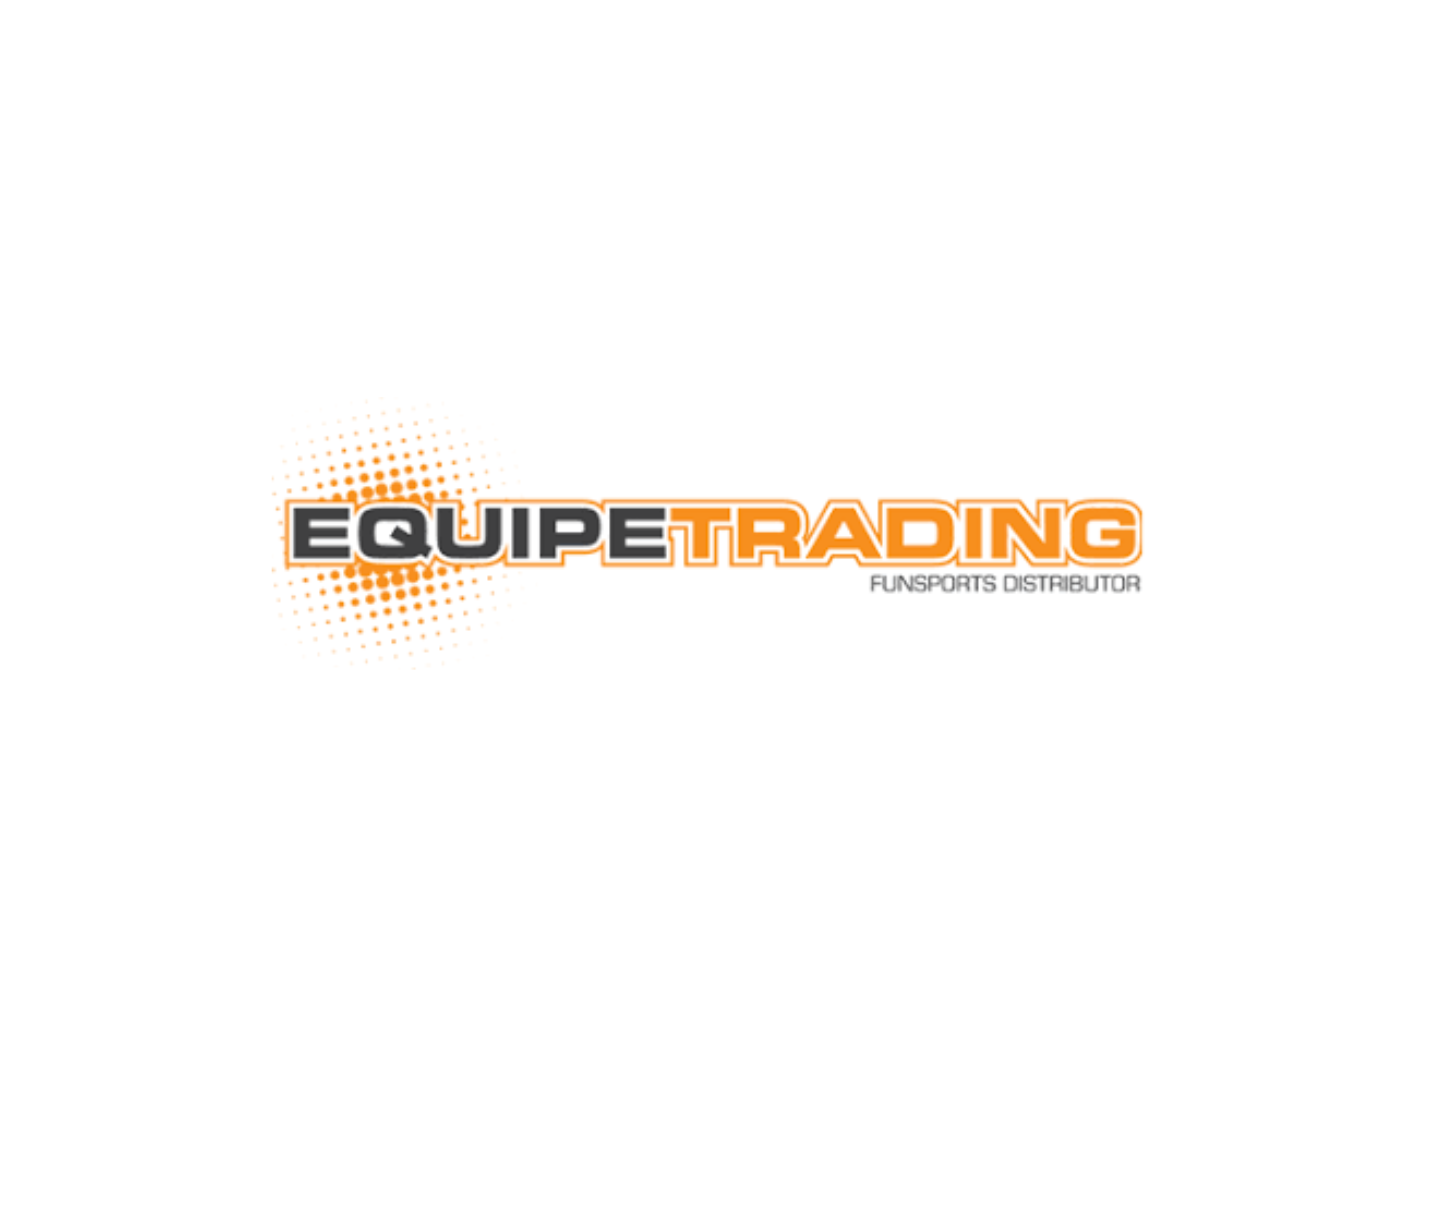 Equipe Trading